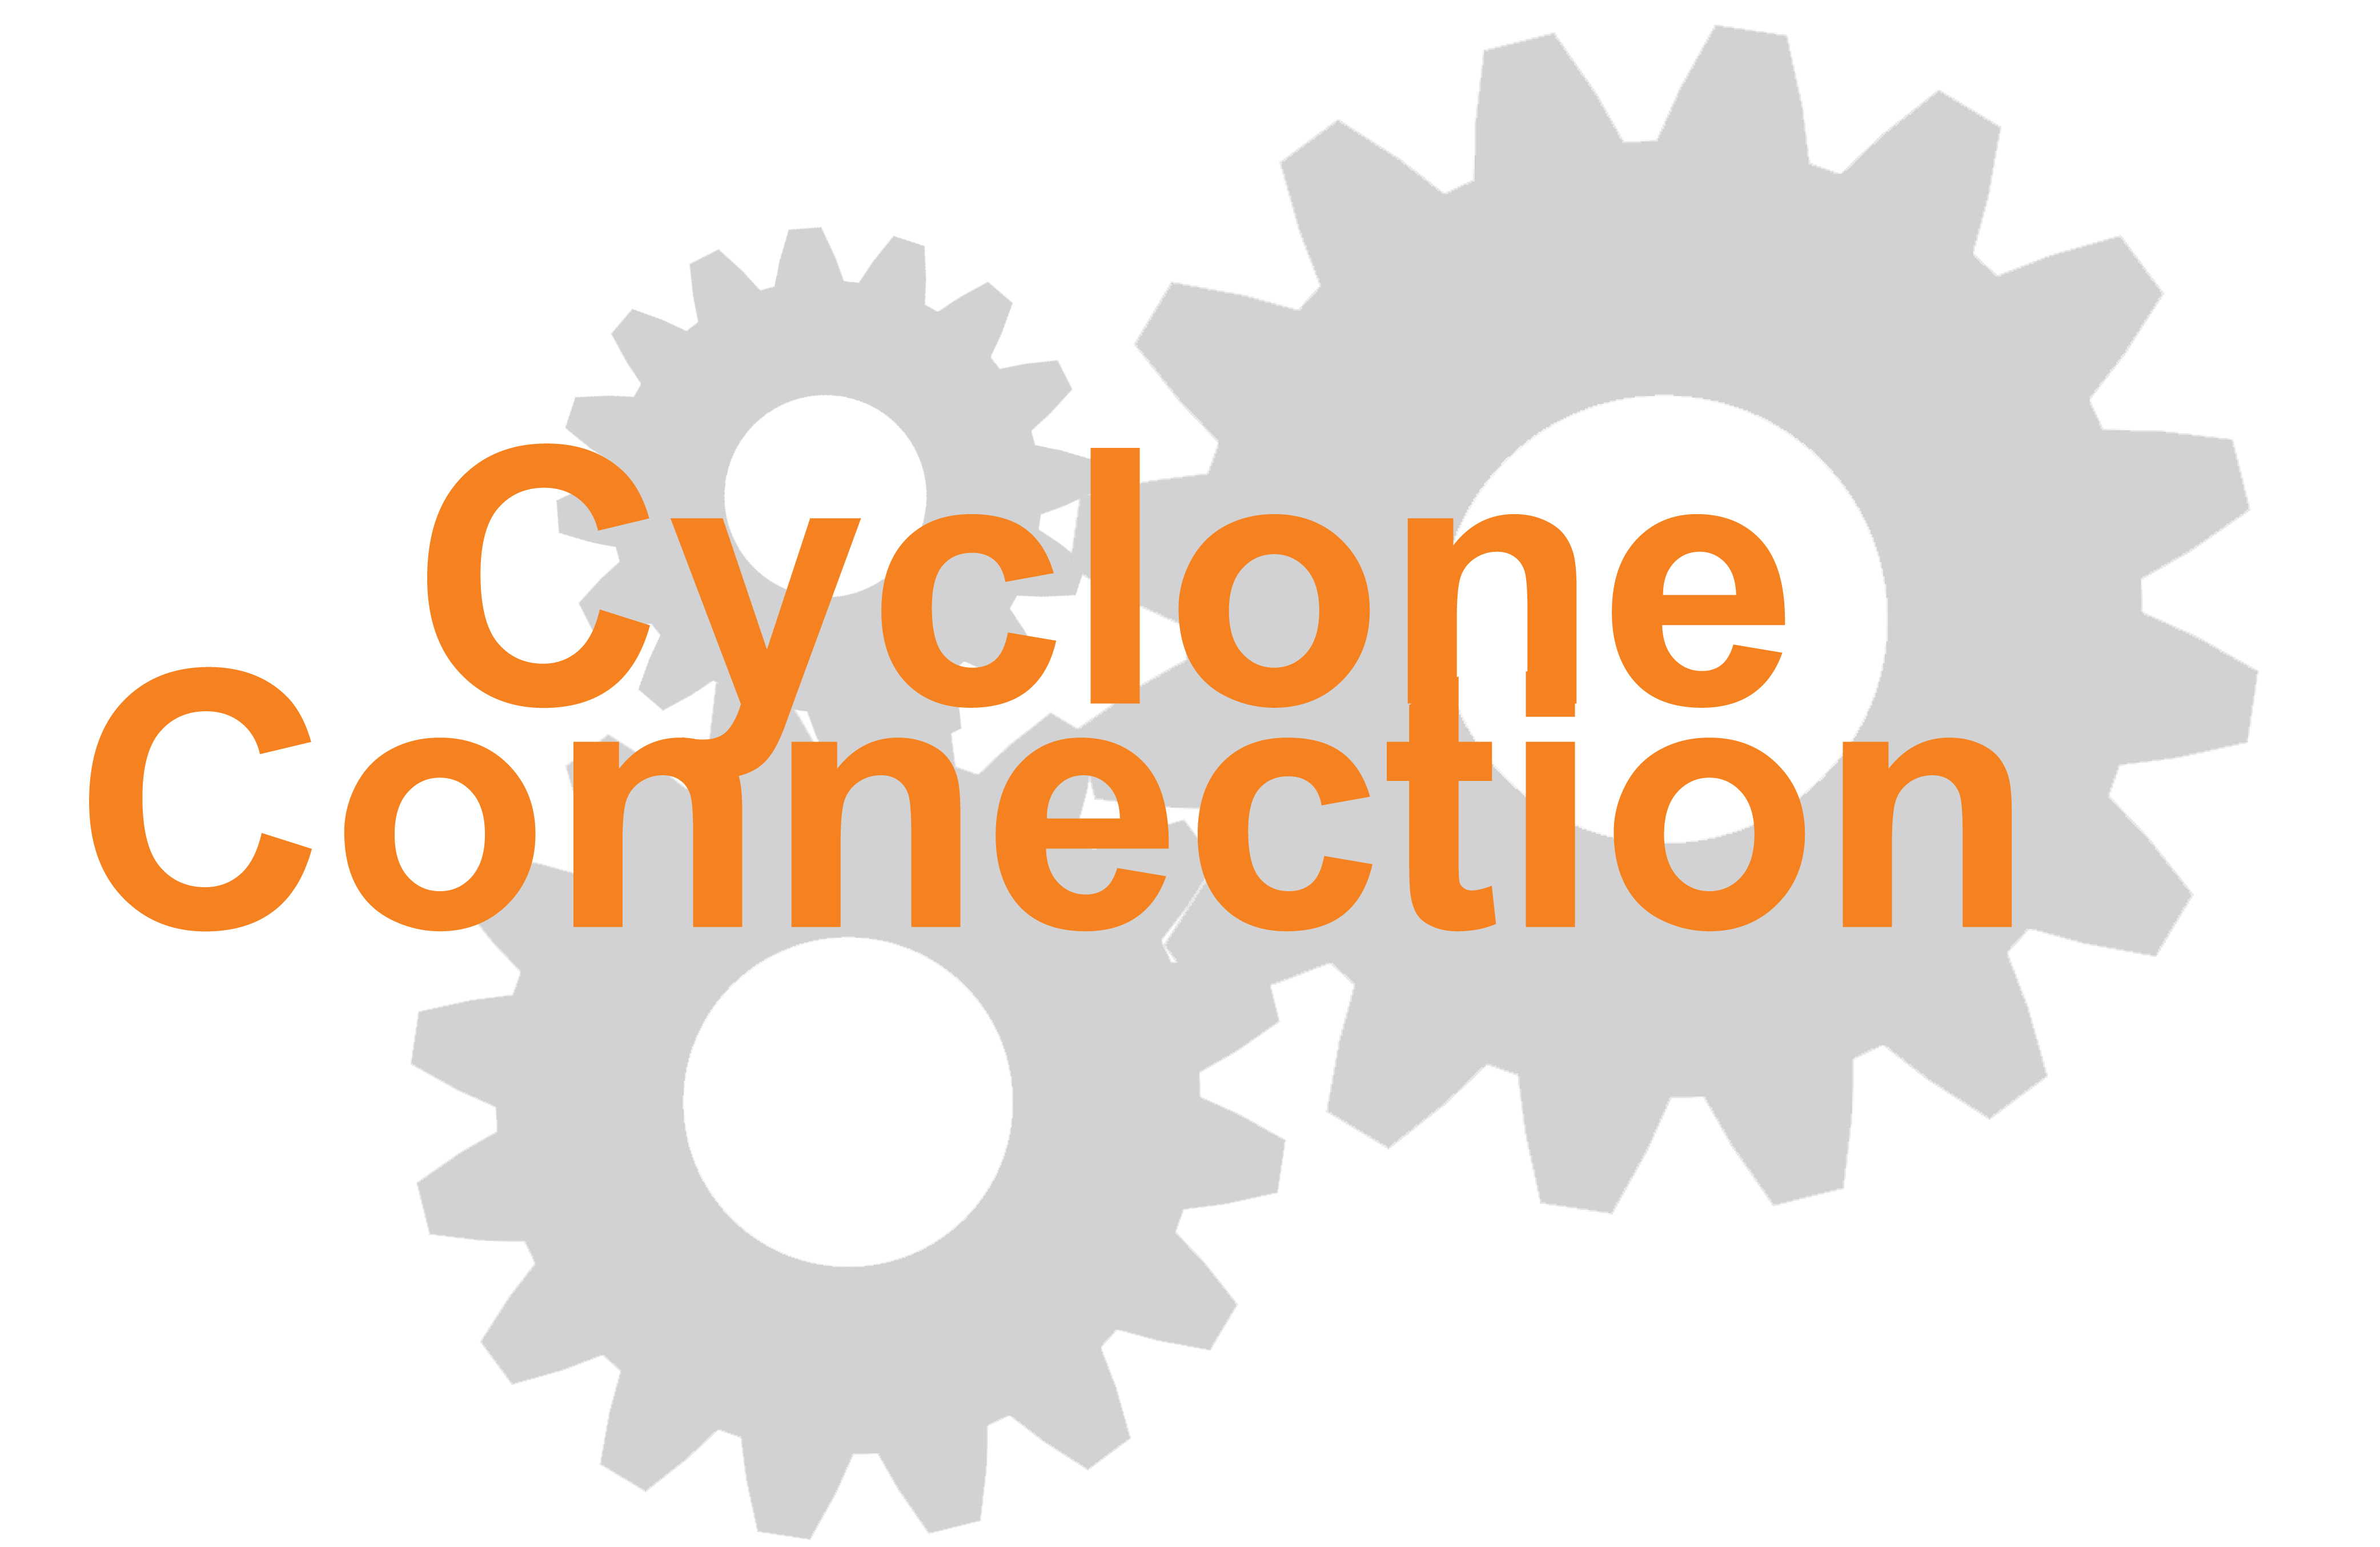 cyclone connection logo